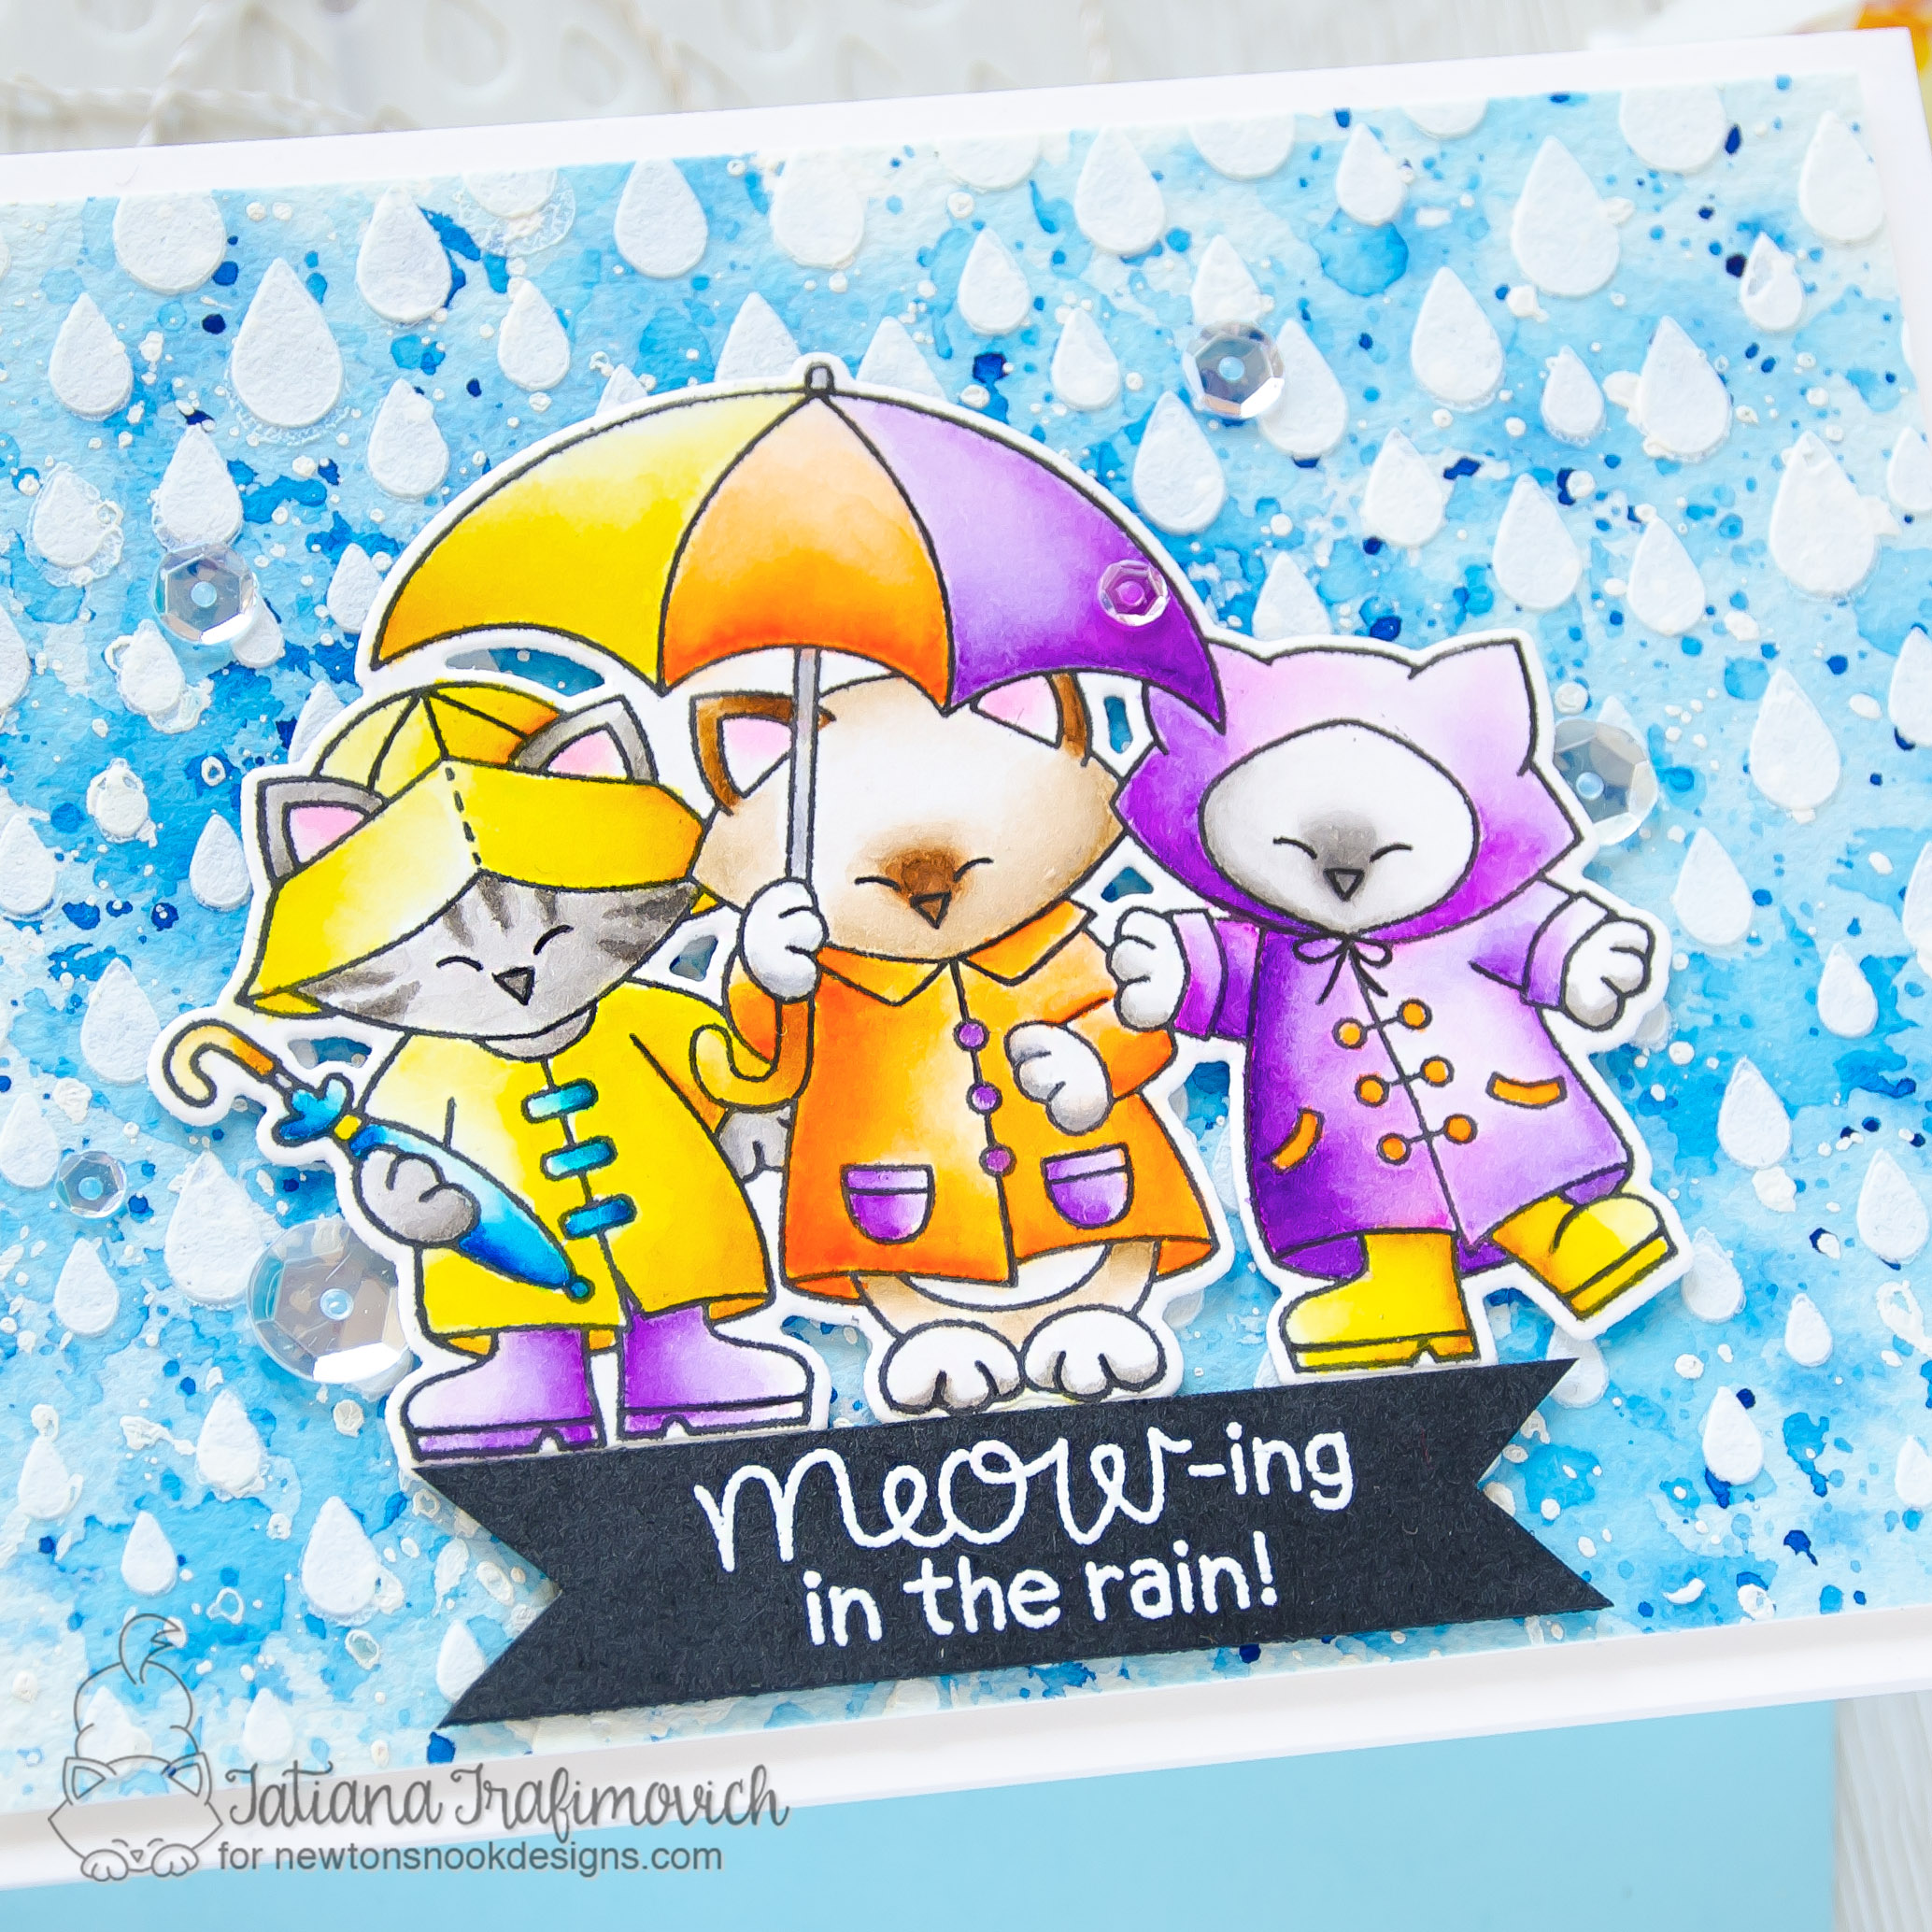 MEOW-ing In The Rain! #handmade card by Tatiana Trafimovich #tatianacraftandart - Newton's Rainy Day Trio stamp set by Newton's Nook Designs #newtonsnook